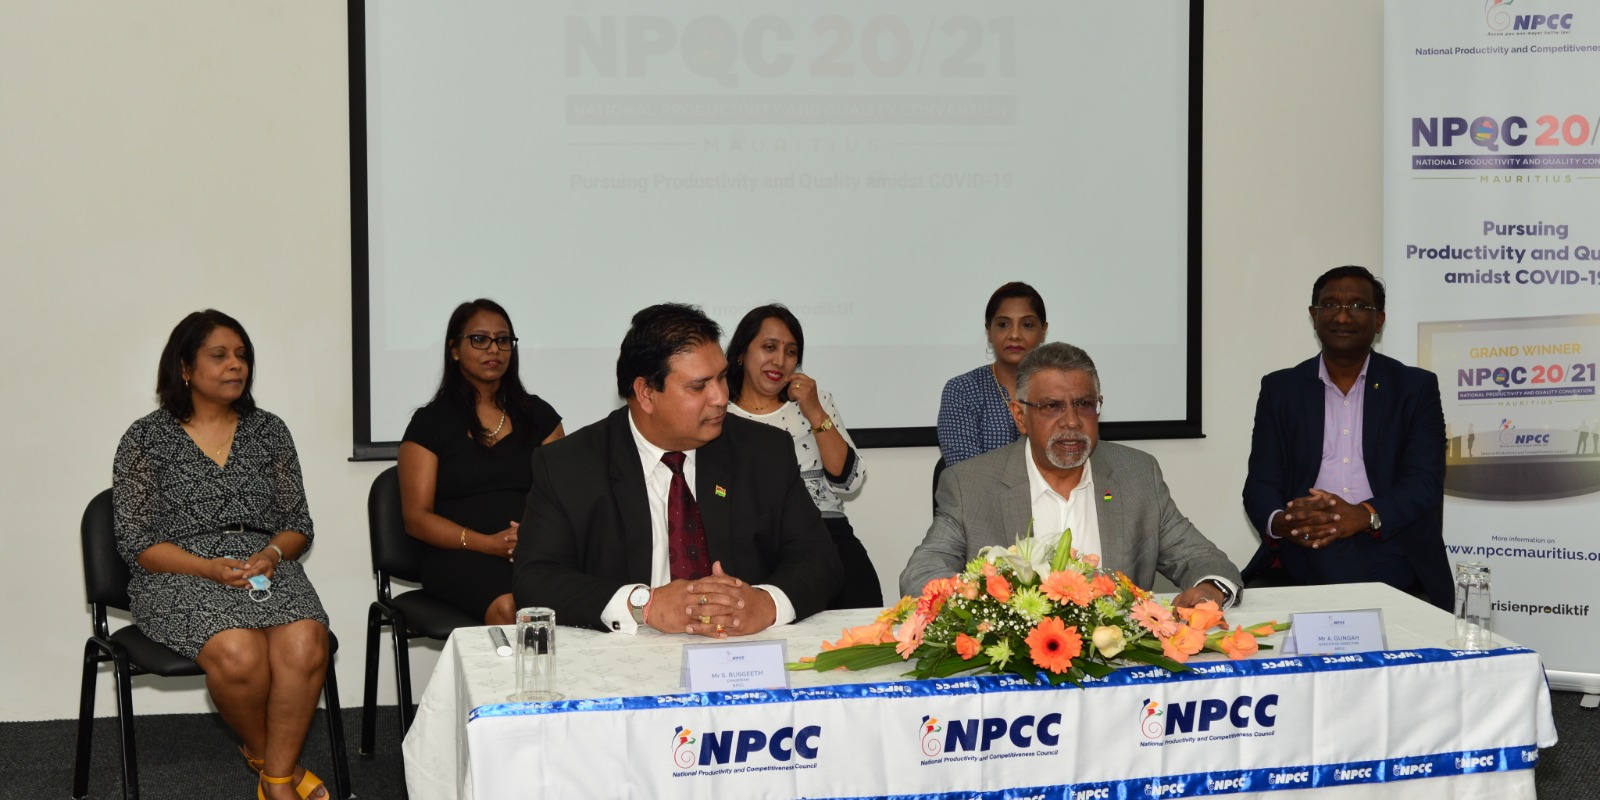 NPQC 2020 - 2021 Press Launch 25.11.20